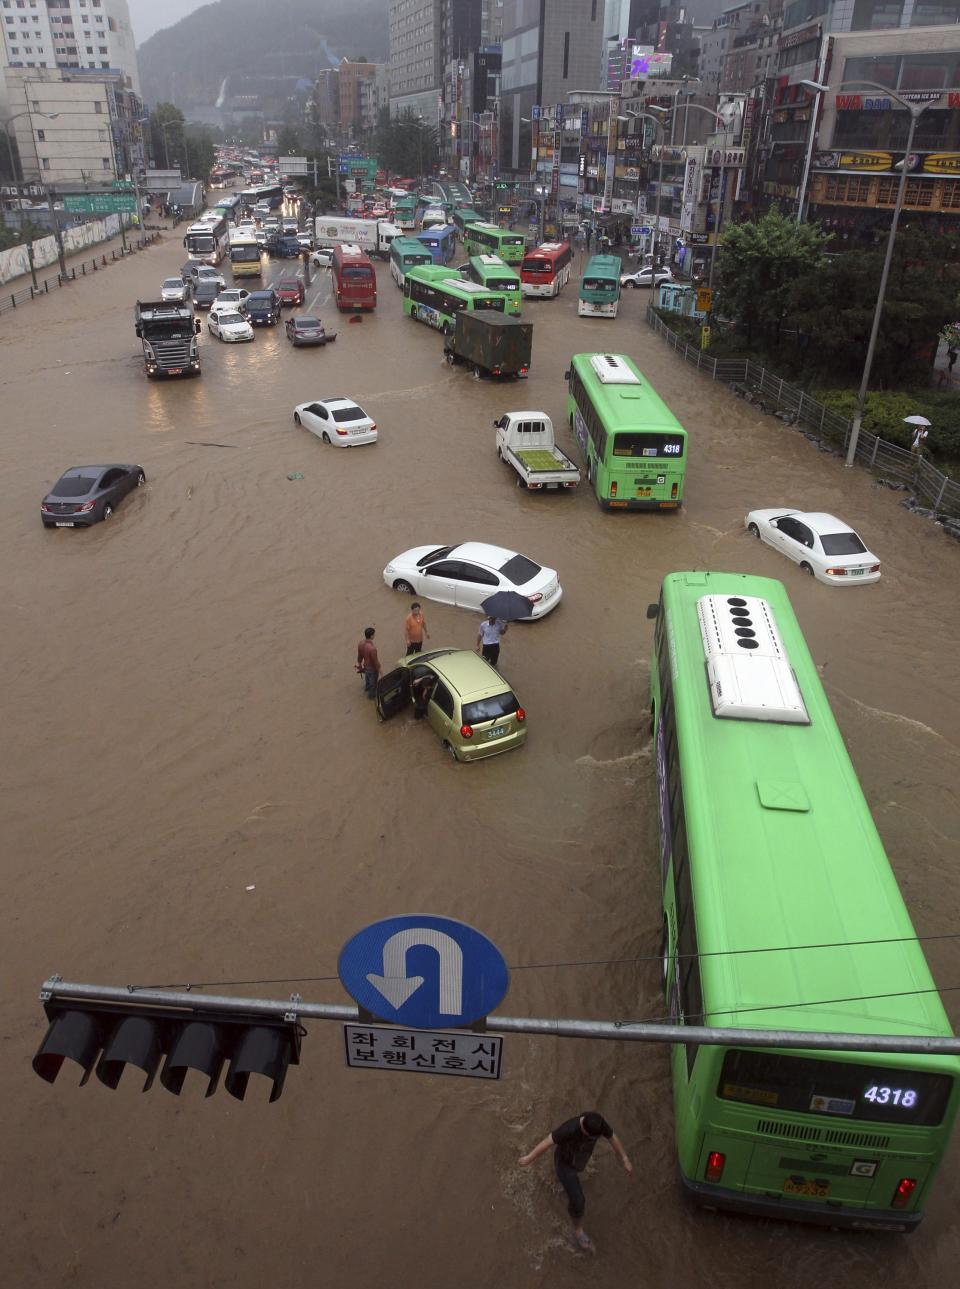 People drive vehicles through a flooded road in Seoul, South Korea, Wednesday, July 27, 2011. Heavy rain sent a landslide barreling into a resort in Chuncheon, a northern South Korean town Wednesday. (AP Photo/Lim Hun-jung) KOREA OUT